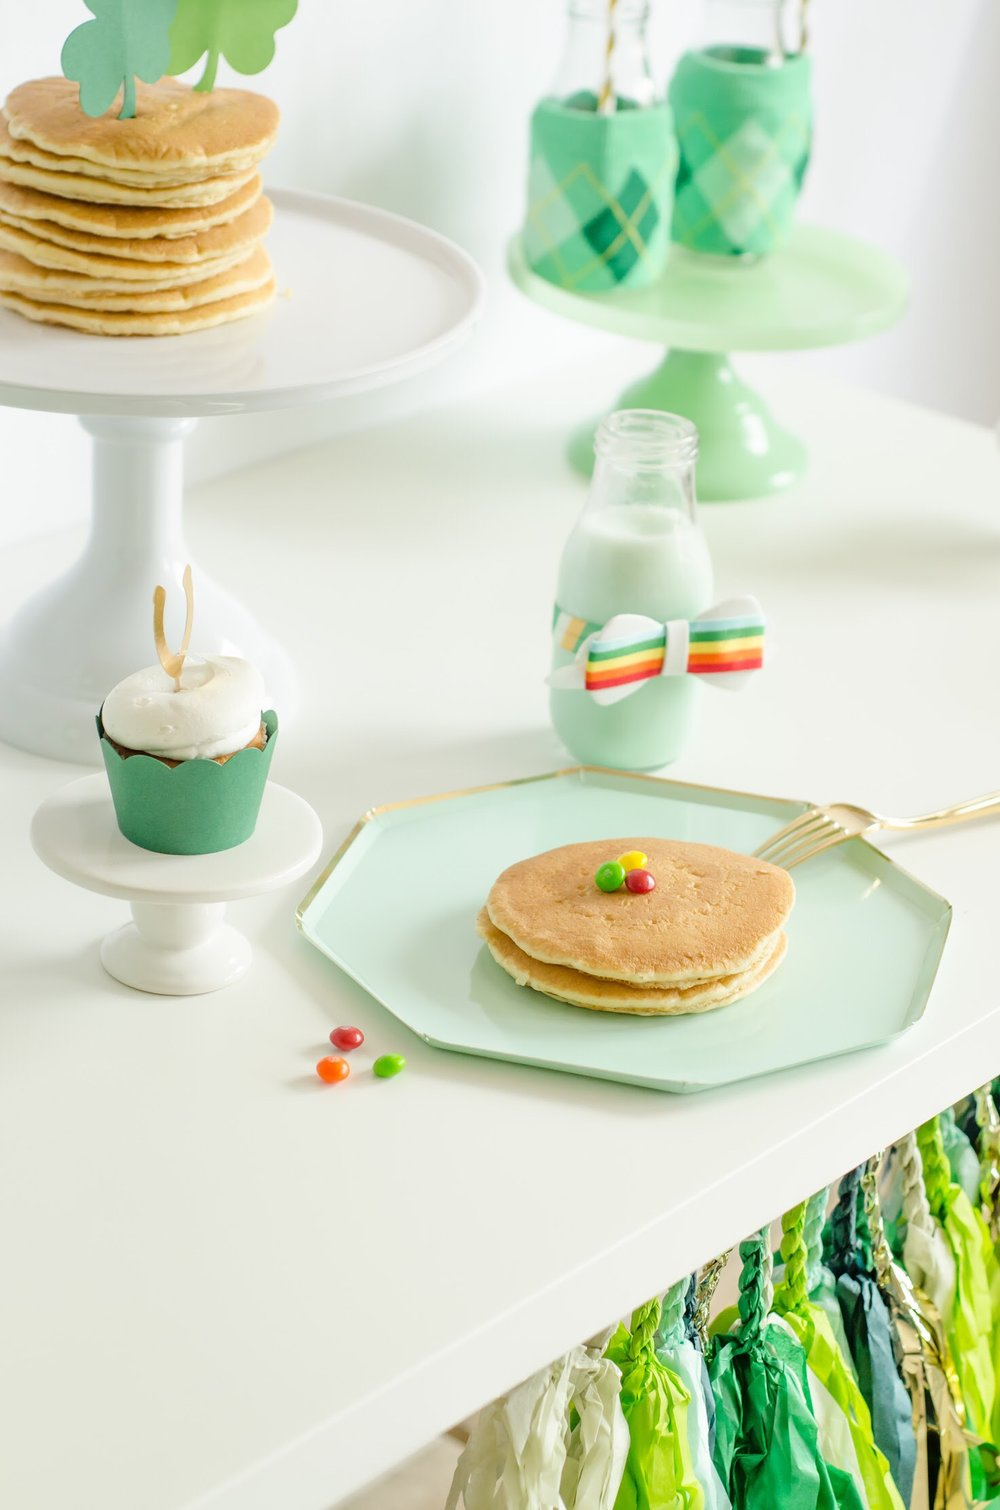 Super cute and easy St. Patrick's Day breakfast idea your kids will love - there's pancakes topped with rainbow candy and of course green milk. Click to see all the green party ideas from Mint Event Design www.minteventdesign.com #partyideas #partydecorations #breakfastfood #saintpatricksday #stpatricksday #pancakes